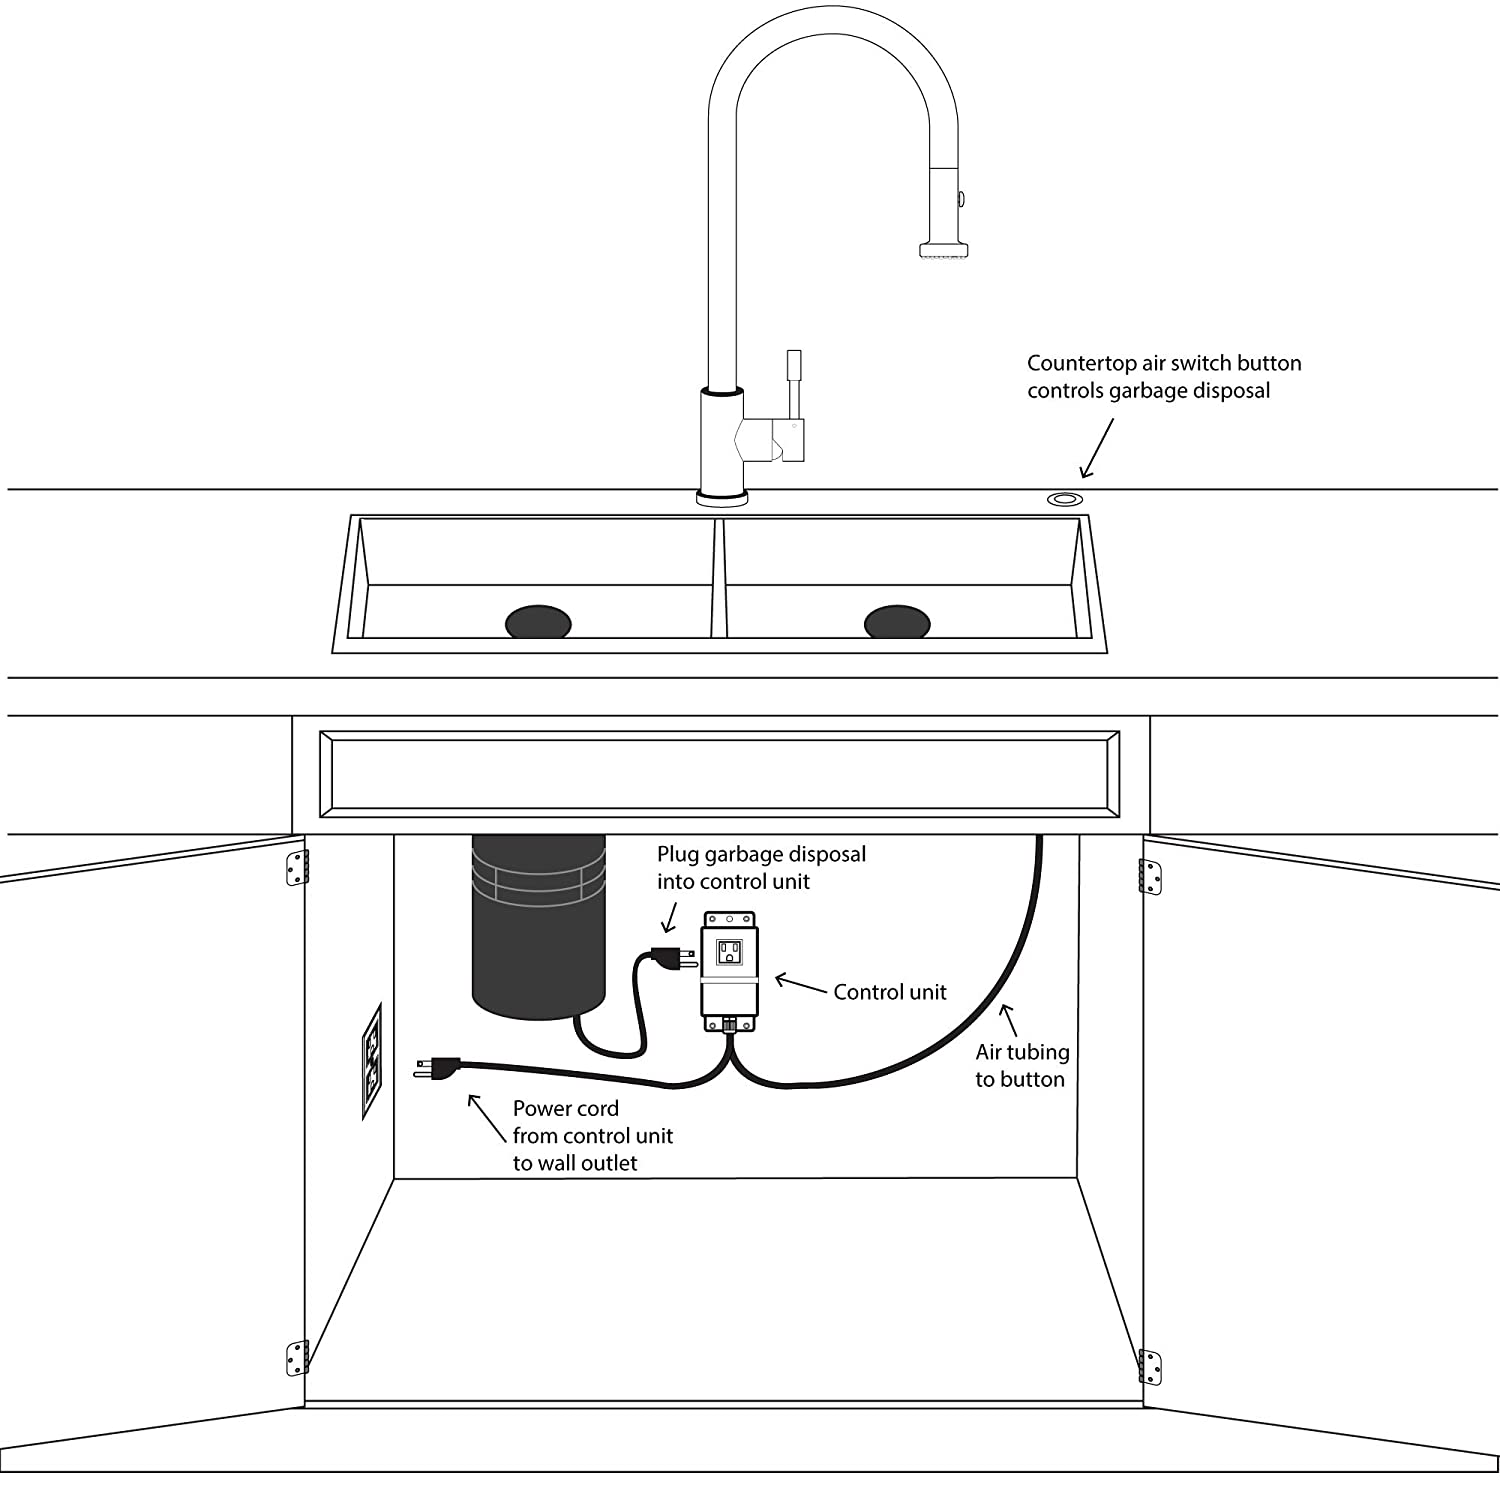 Gts ga7 power 110 vac single outlet sink garbage disposal air on wiring a garbage disposal diagram Install Garbage Disposal Assembly Schematic Garbage Disposal Outlet Location